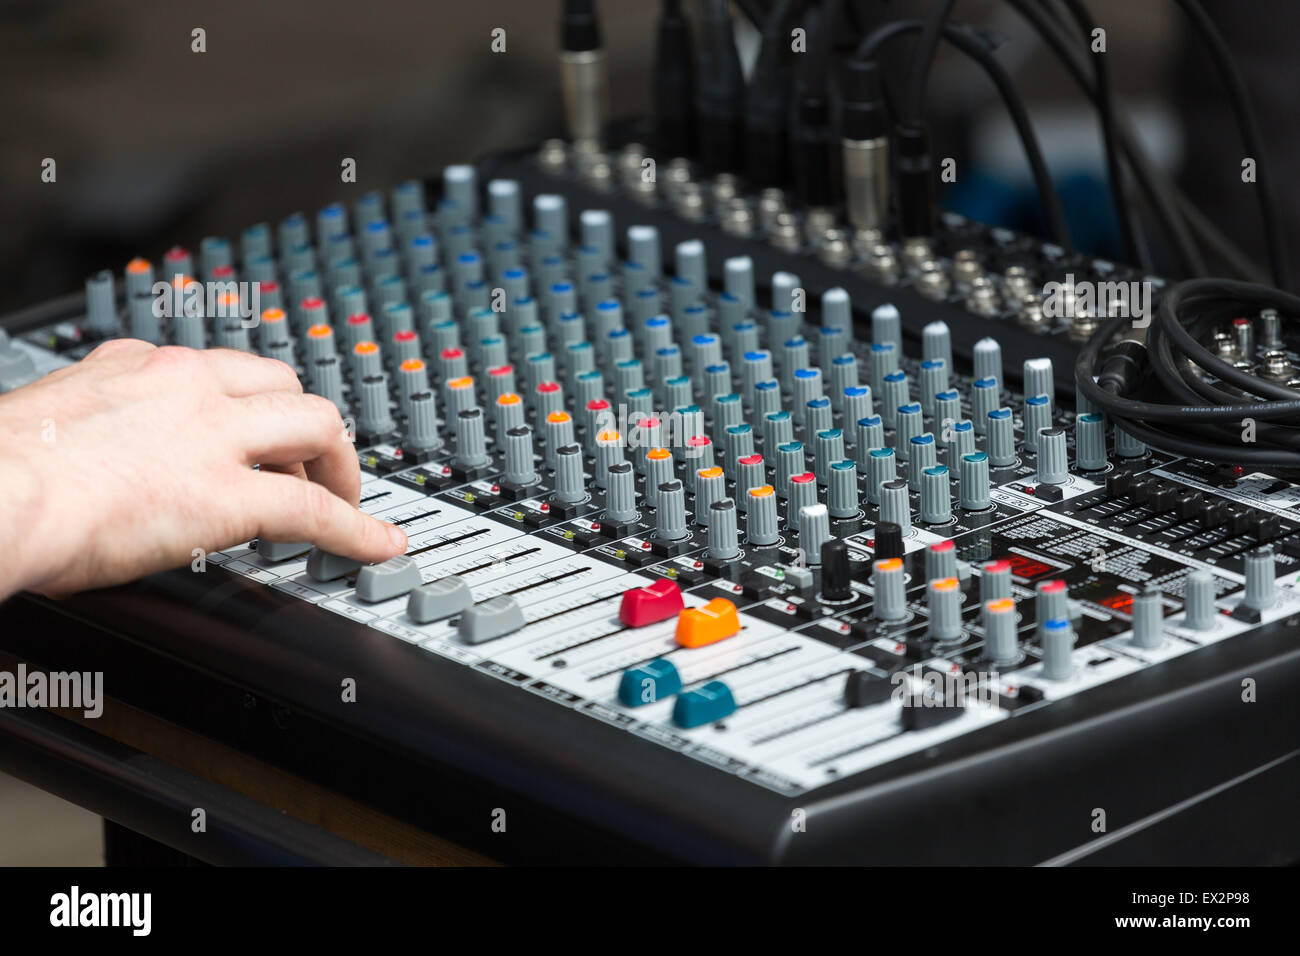 A sound mixing board at a music gig - Stock Image